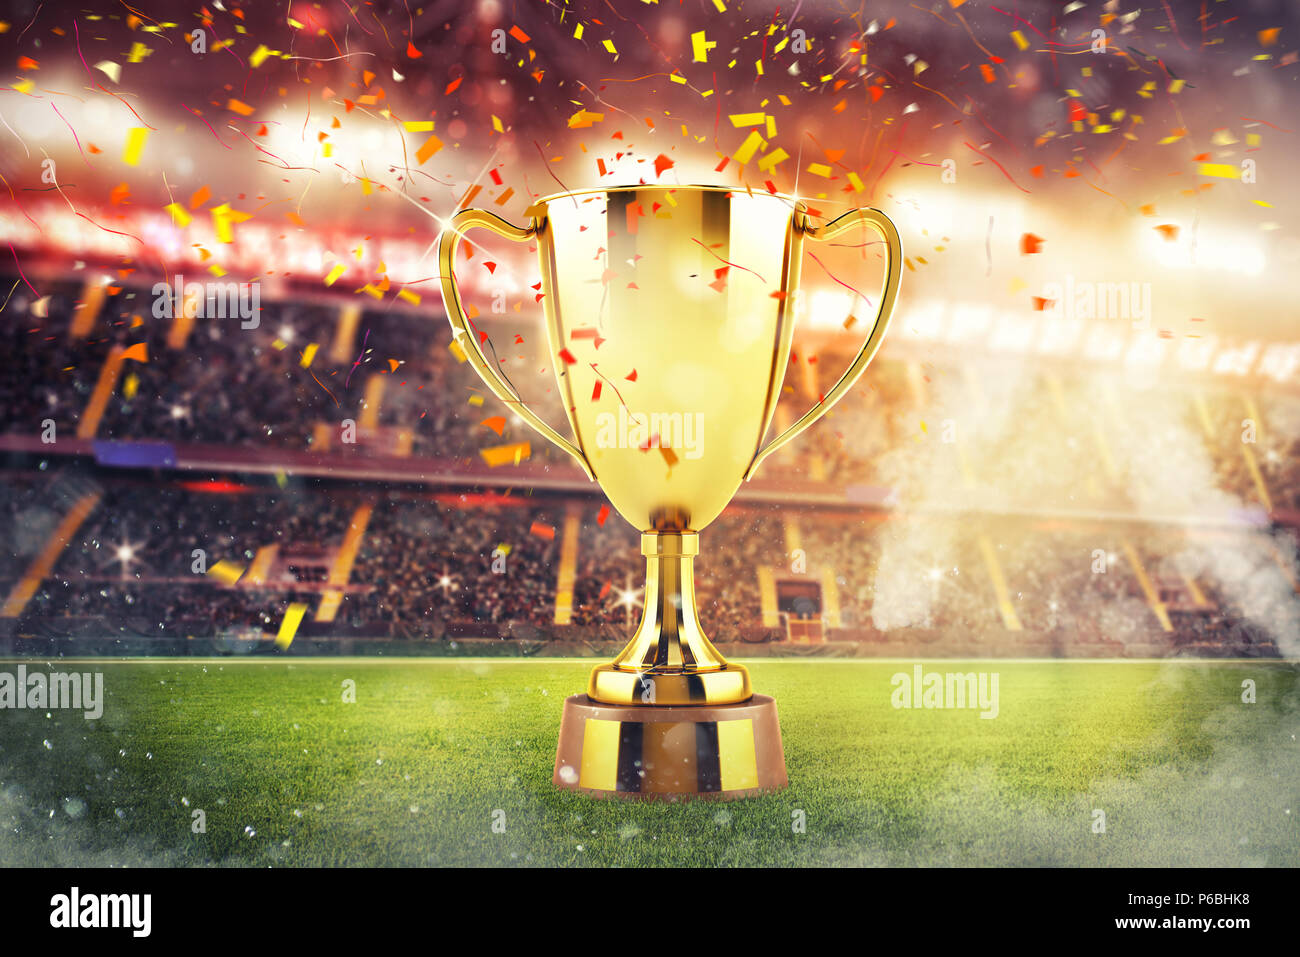 Golden winner's cup in the middle of a stadium with audience Stock Photo